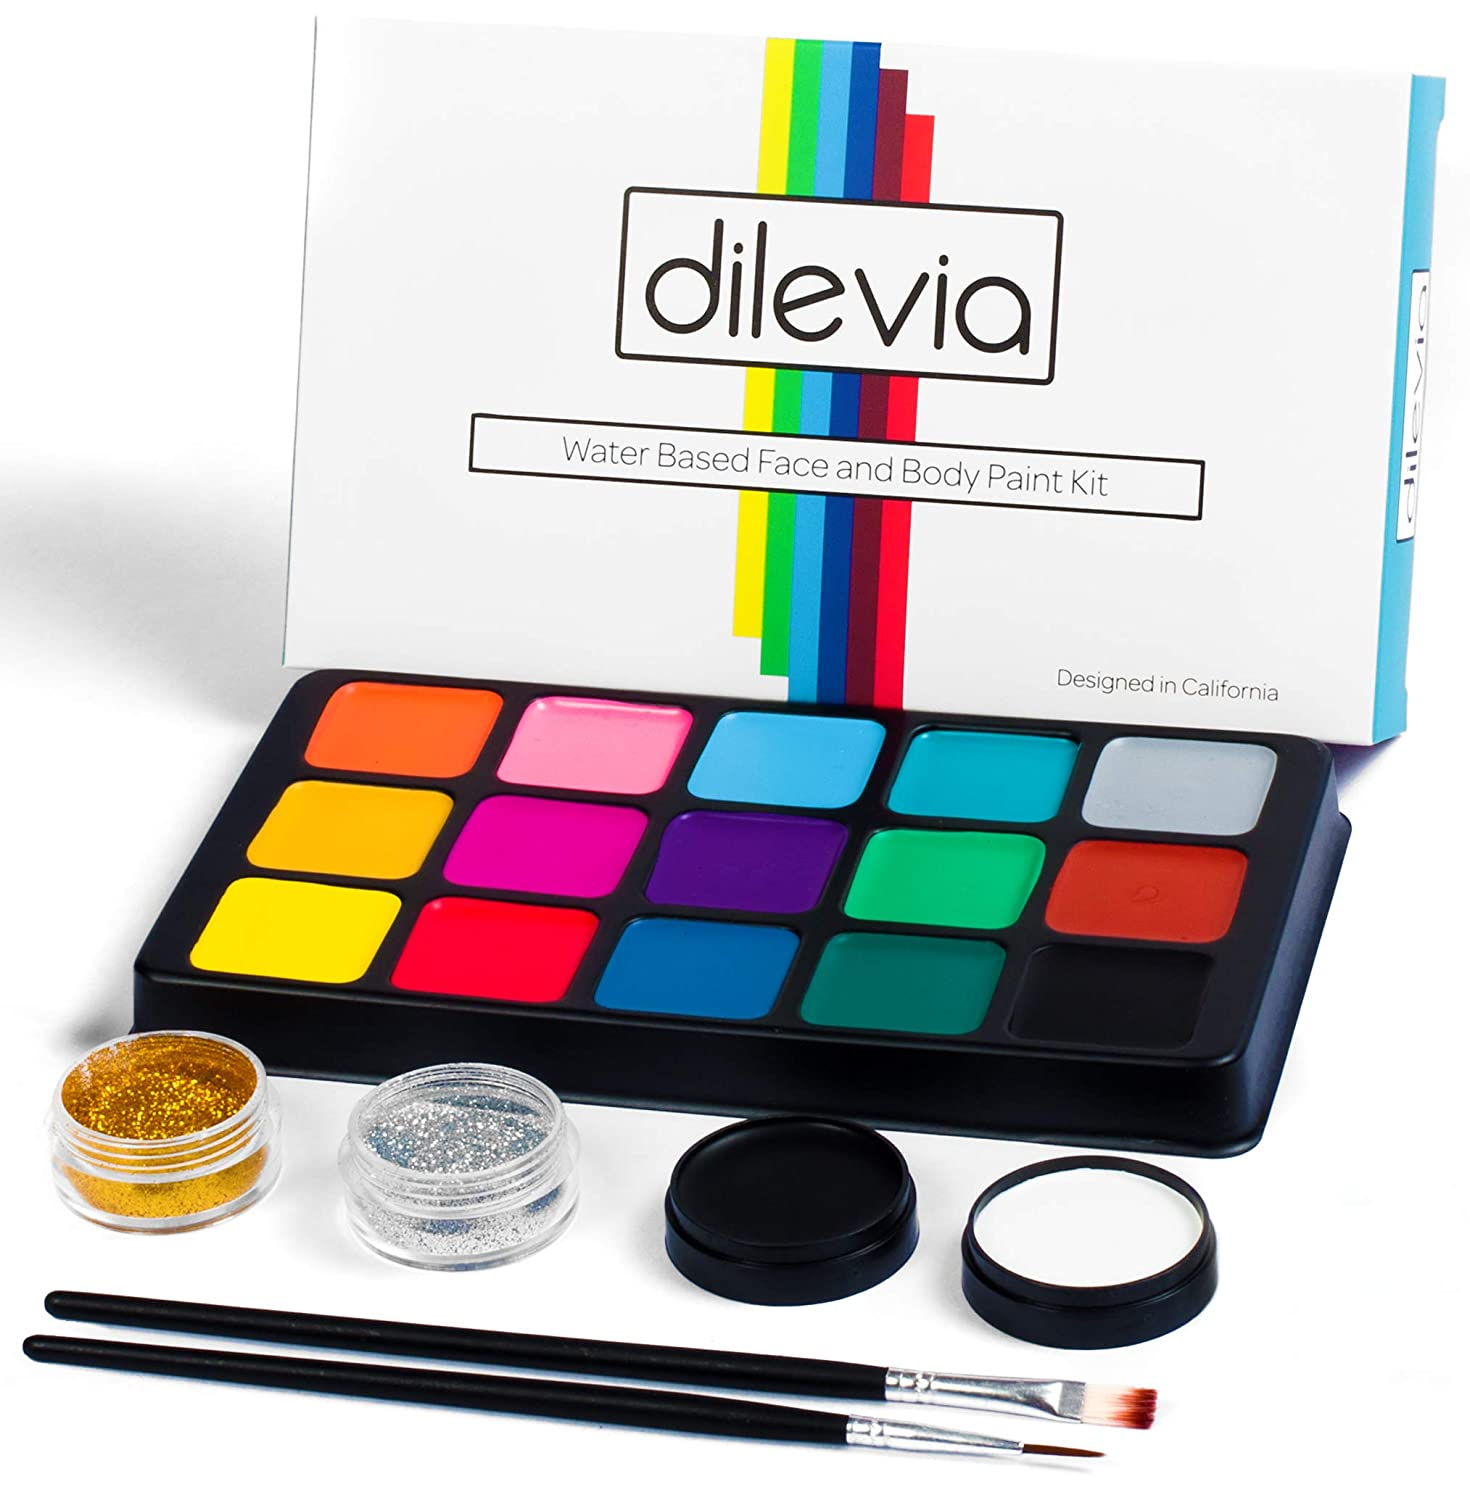 Face Paint Kit for Kids by Dilevia - Professional Cosmetic Grade Palette, 15 Vibrant Colors, 60 Reusable Stencils, 2 Glitters, 4 Sponges, 2 Brushes, Hypoallergenic, Fragrance-Free, Non-Toxic